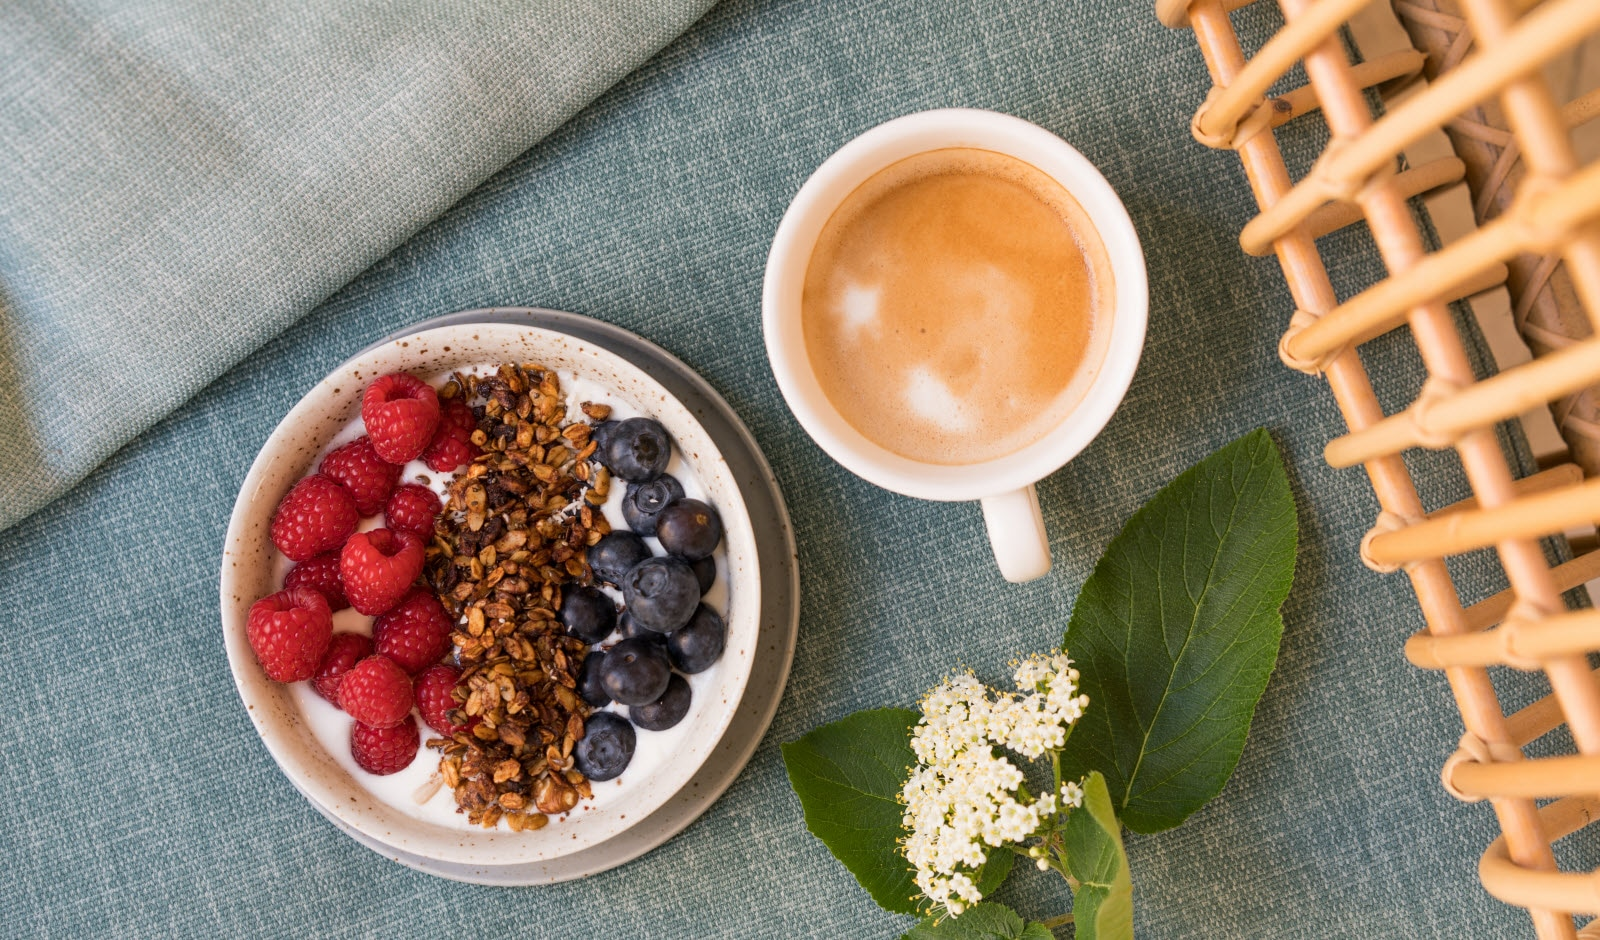 Be your own breakfast architect - granola and berries